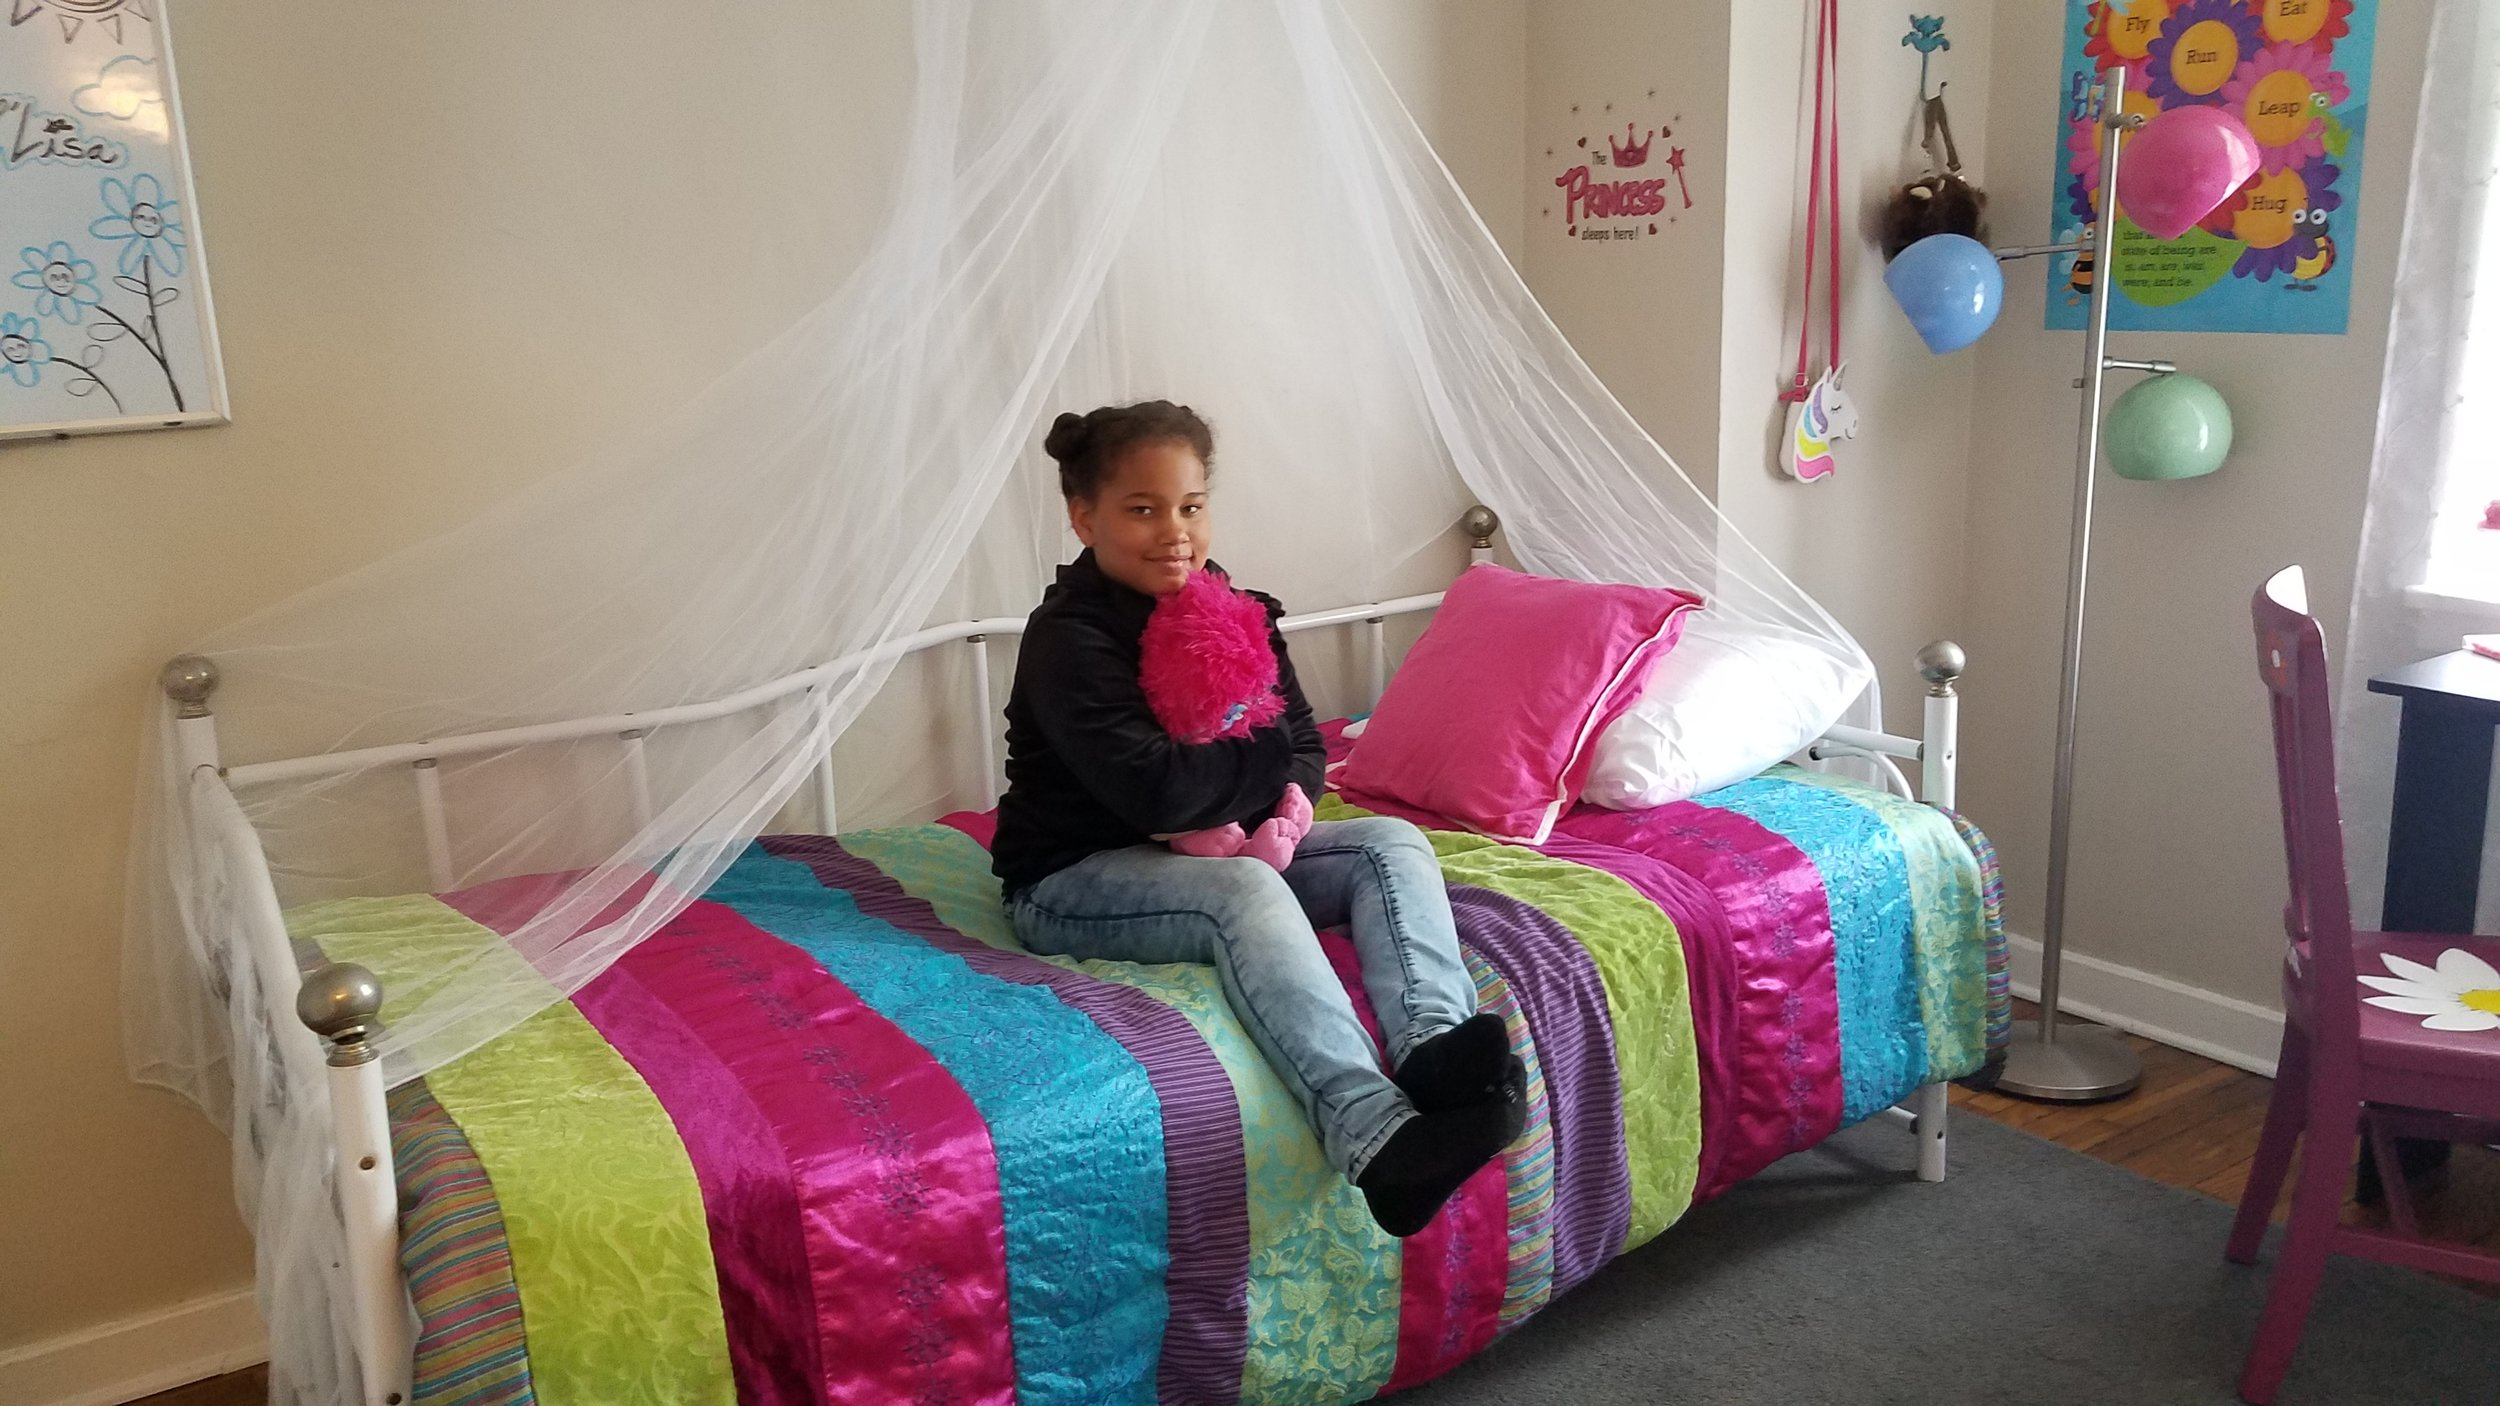 Colorful, comfortable and creative space for a beautiful little girl.